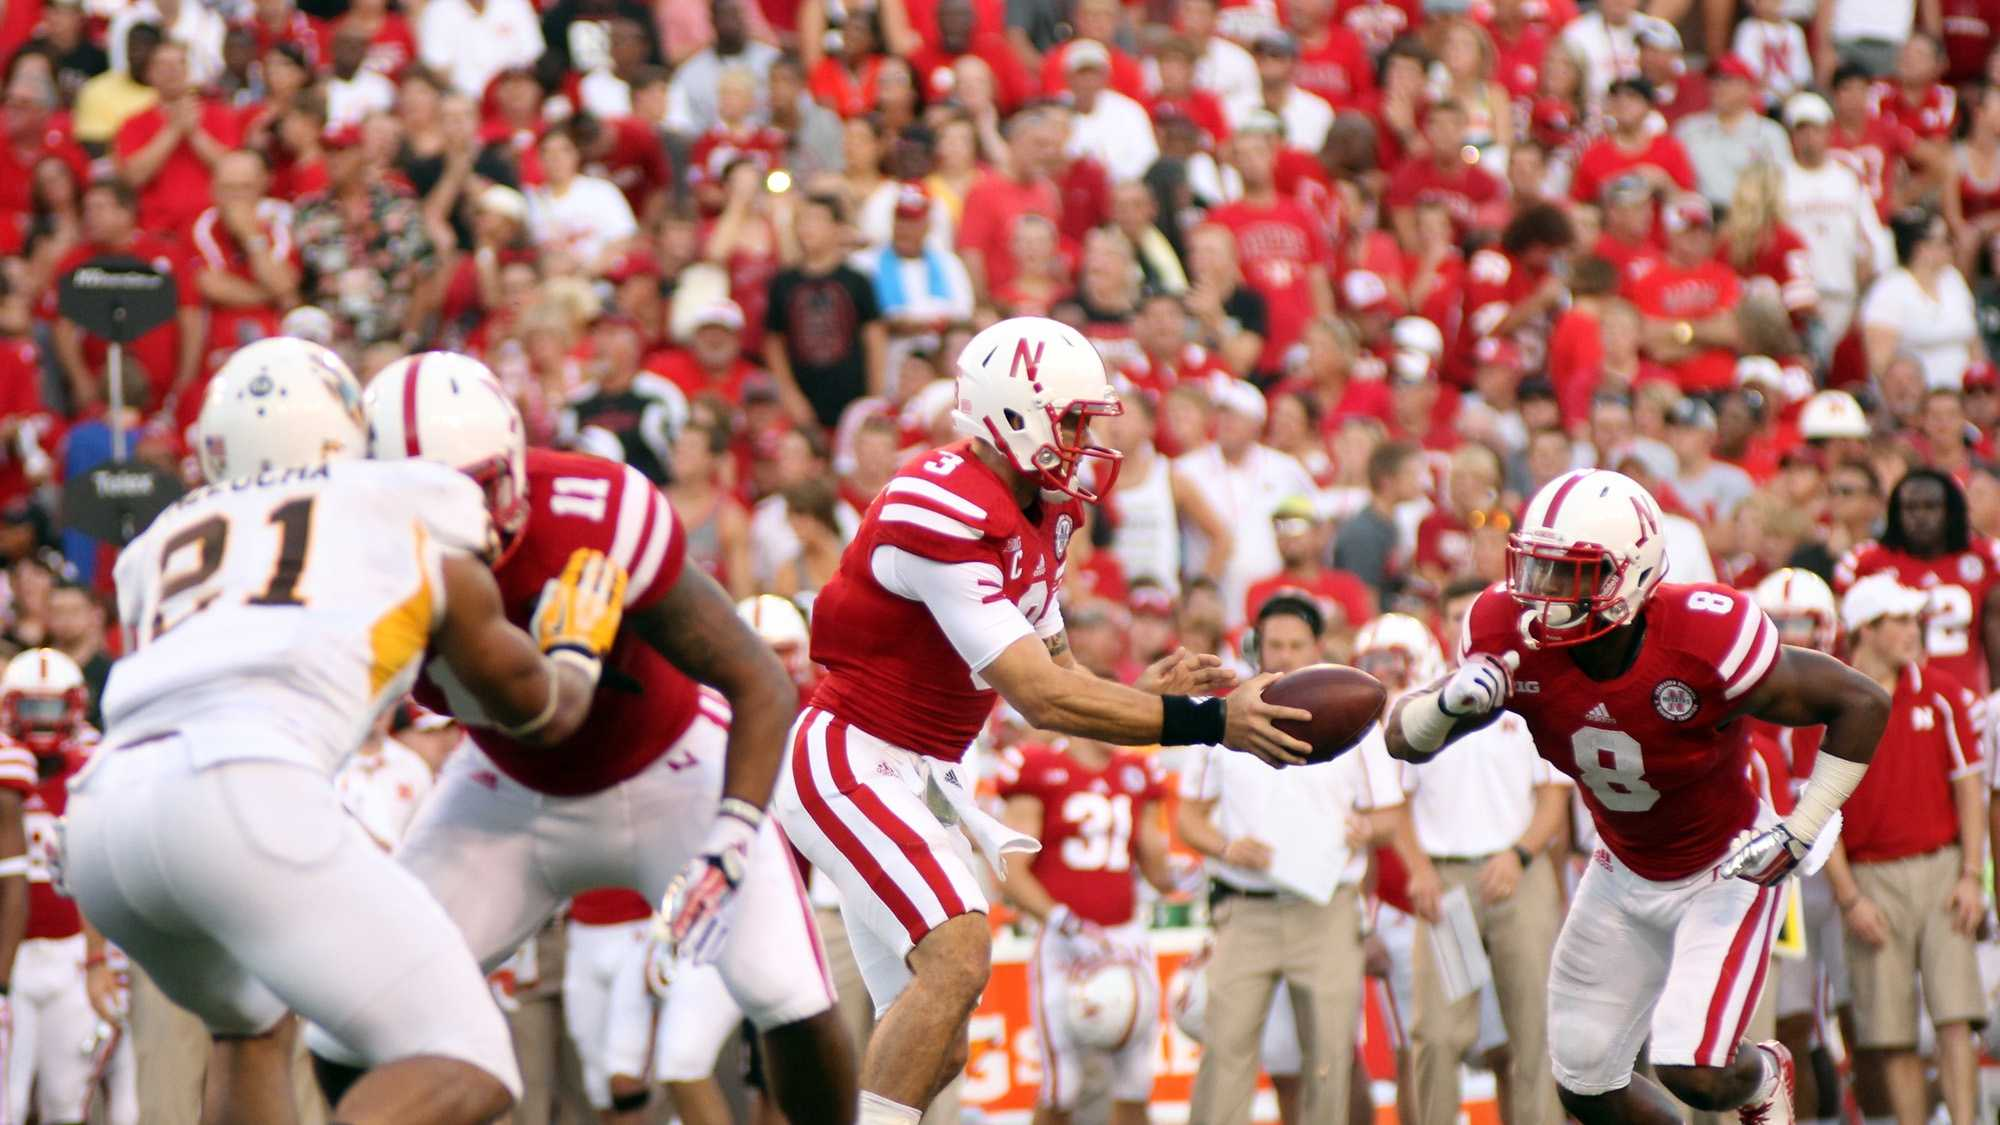 Taylor Martinez prepares to hand the ball off to Ameer Abdullah.